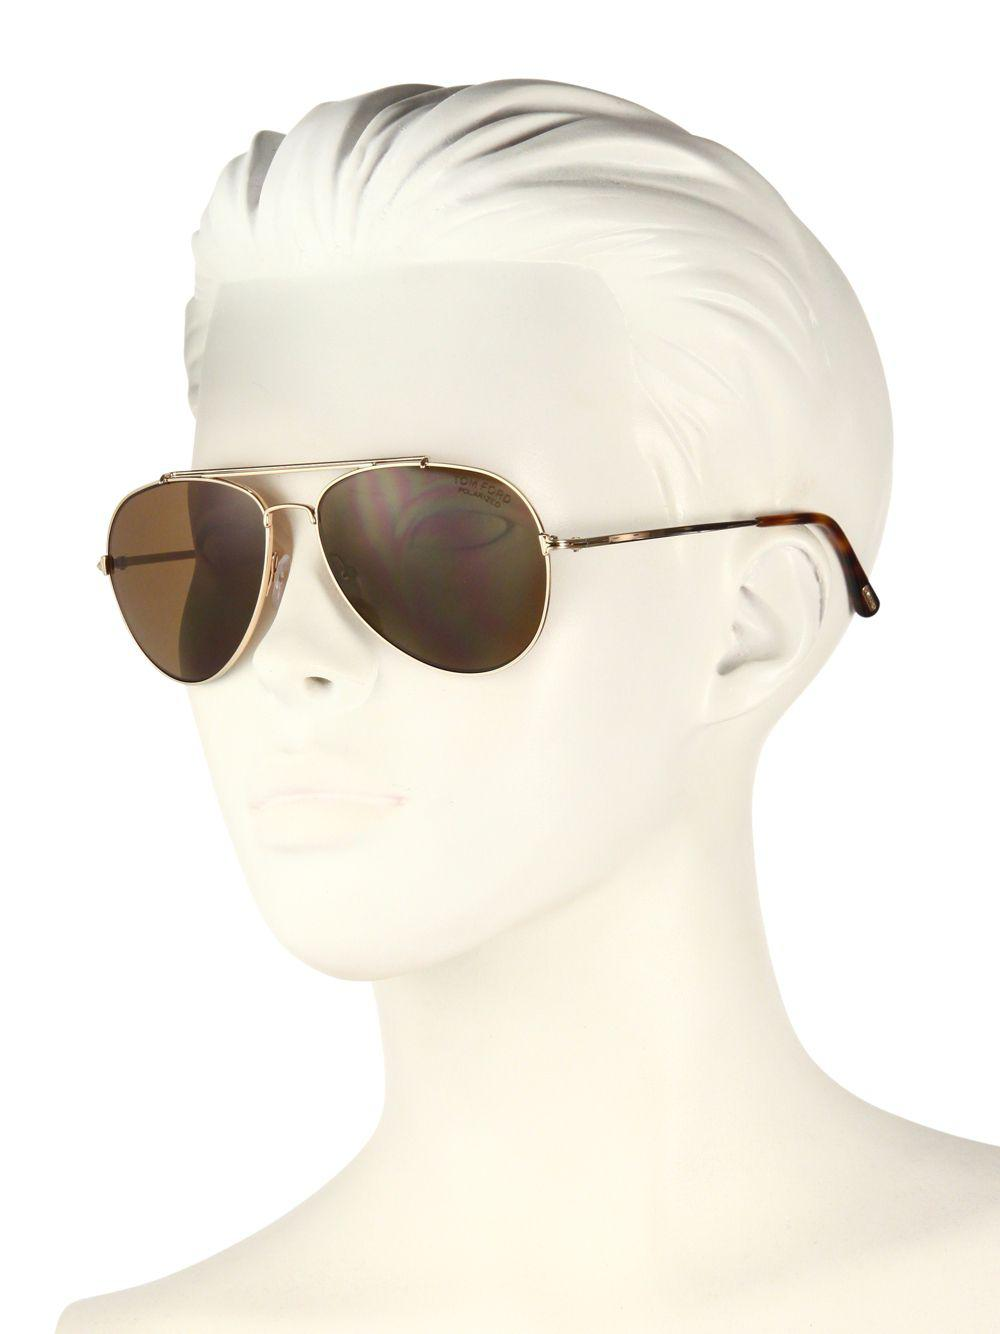 c3e6935cff5 Tom Ford - Yellow Indiana 58mm Polarized Aviator Sunglasses - Lyst. View  fullscreen